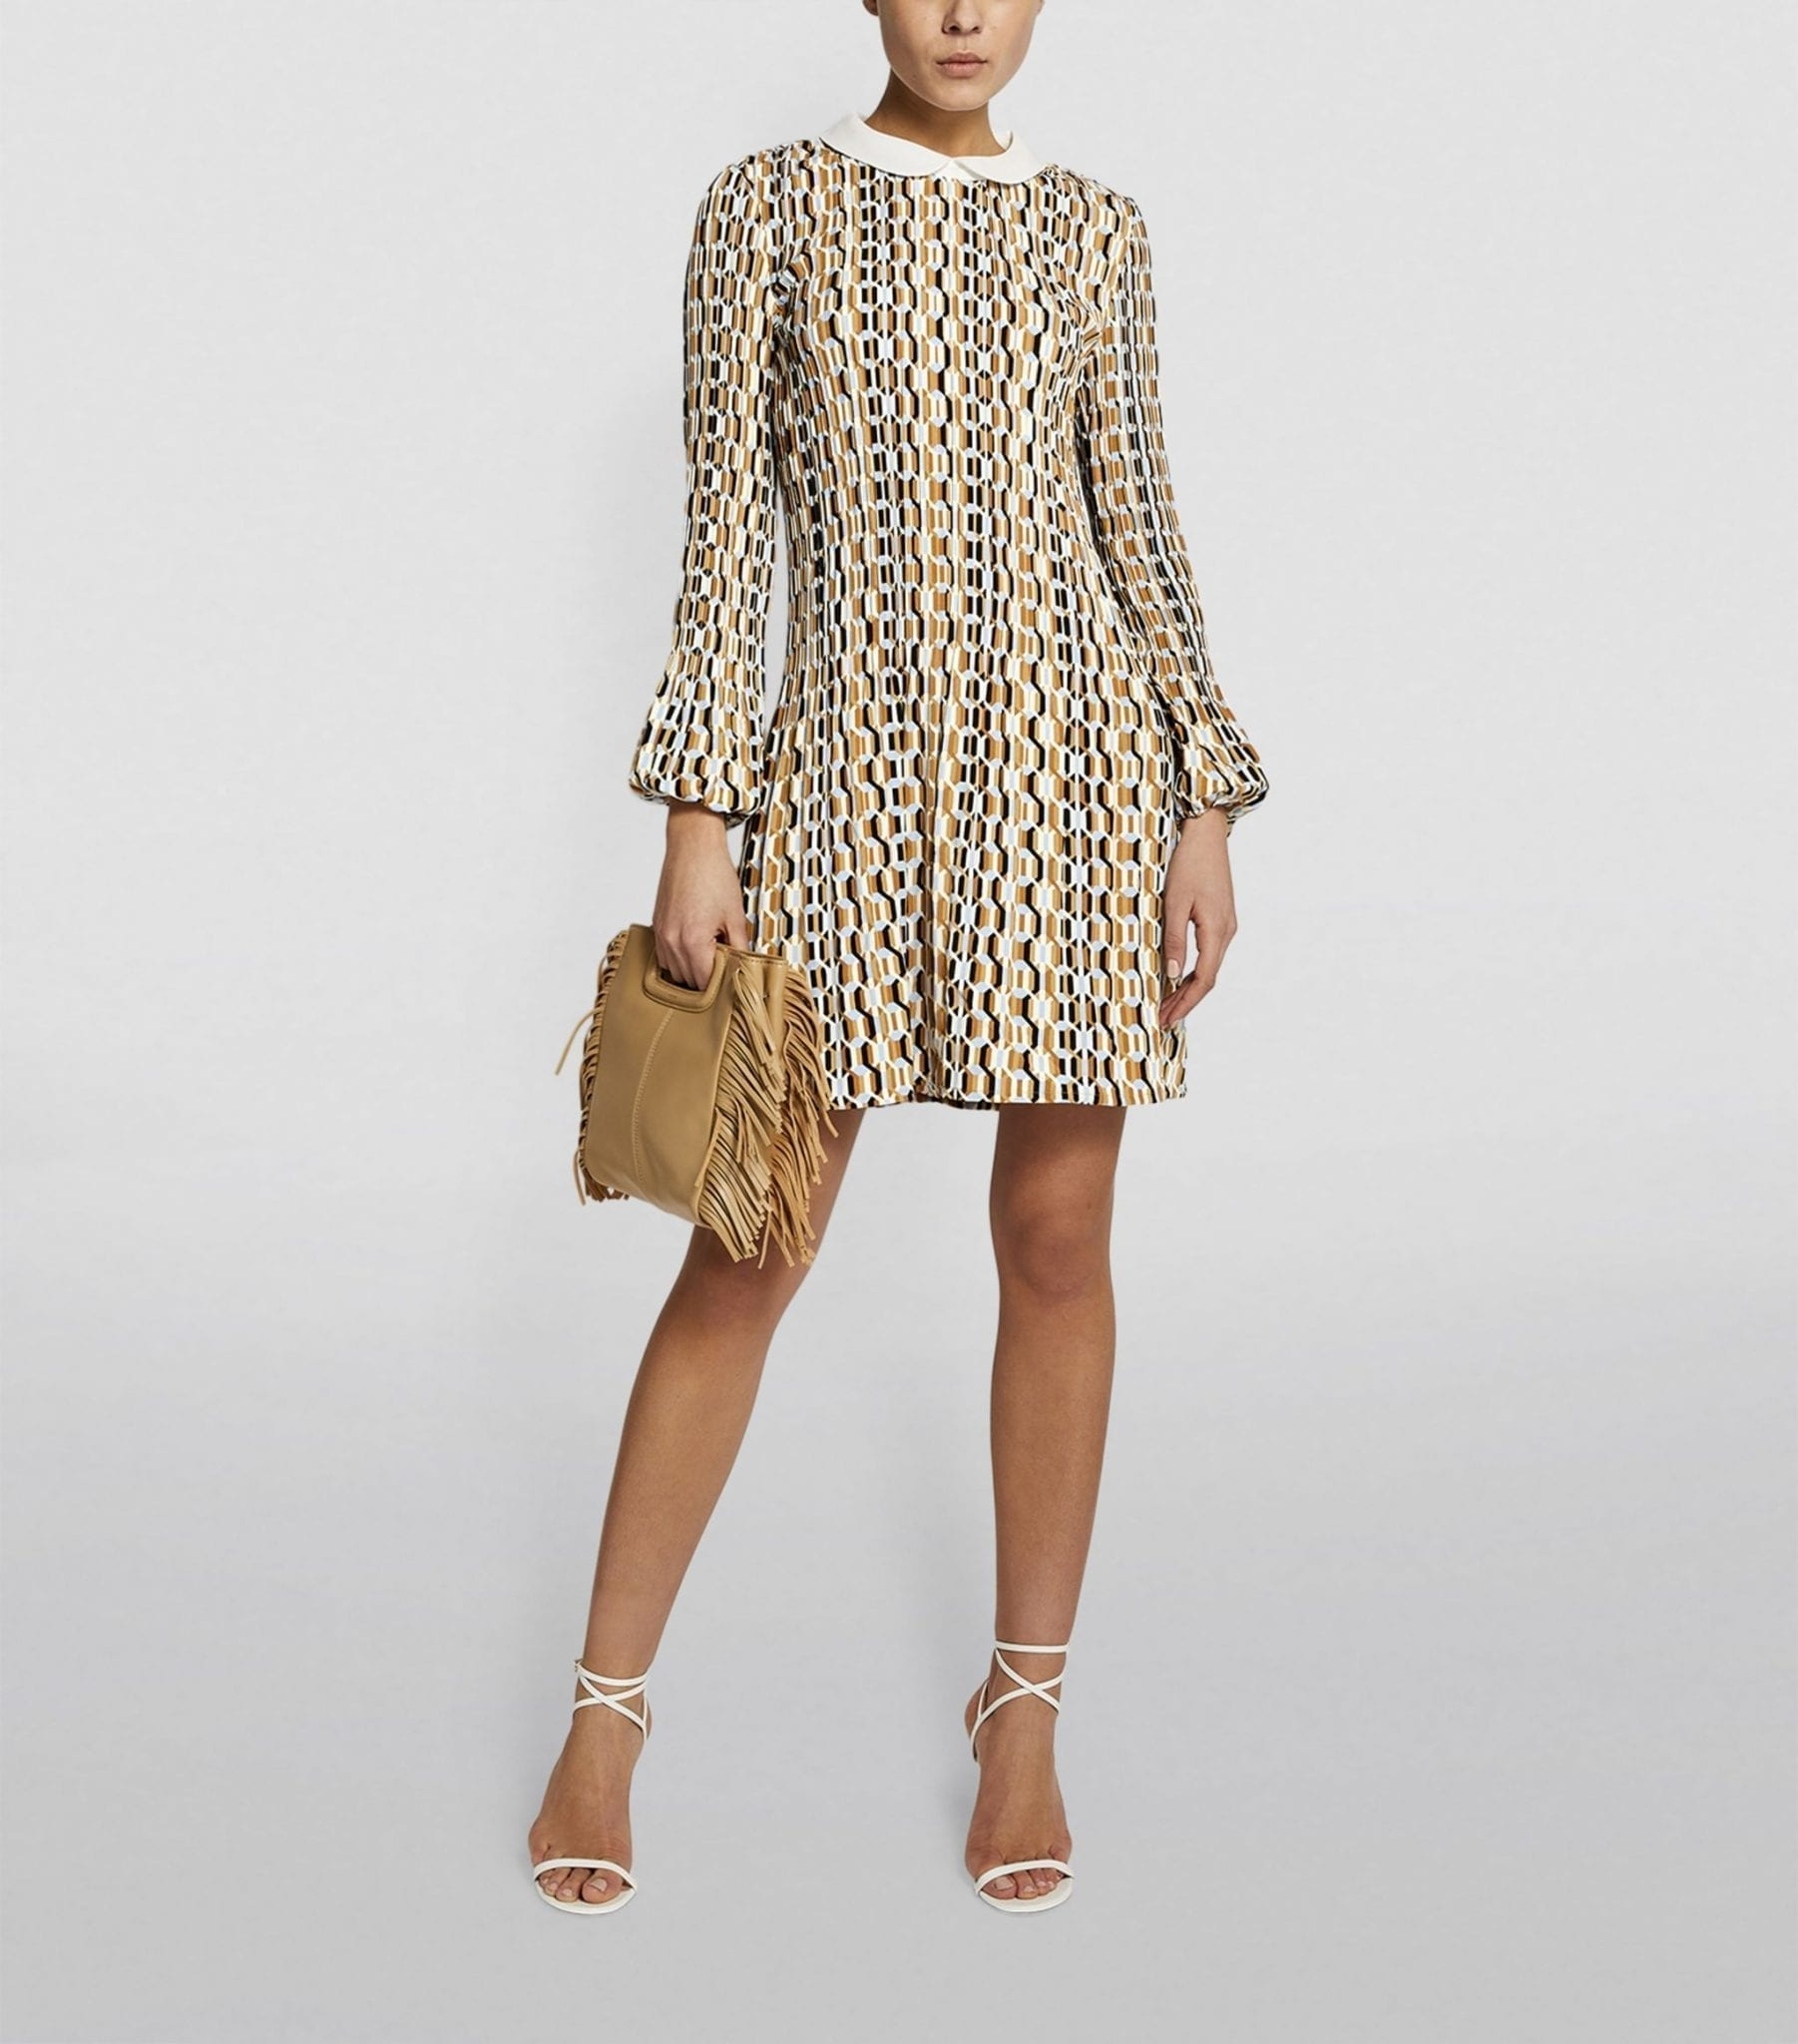 MAJE Pleated Graphic Print Dress